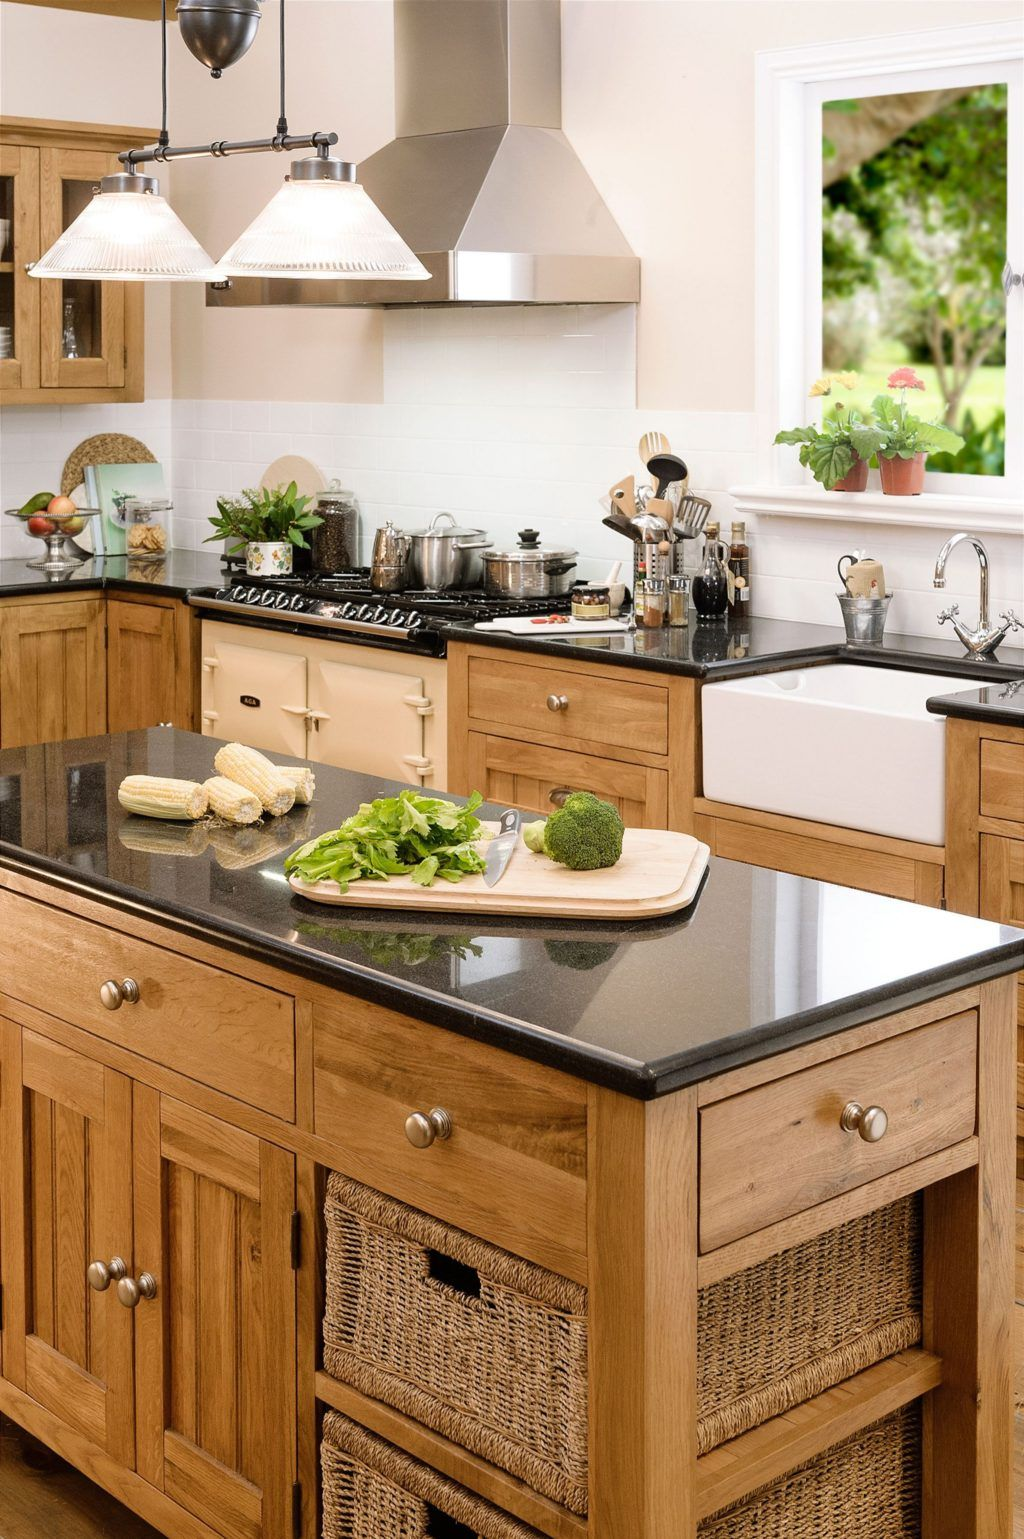 25 charming kitchen cabinet decorating ideas using oak trees maple kitchen cabinets charming on kitchen makeover ideas id=77423